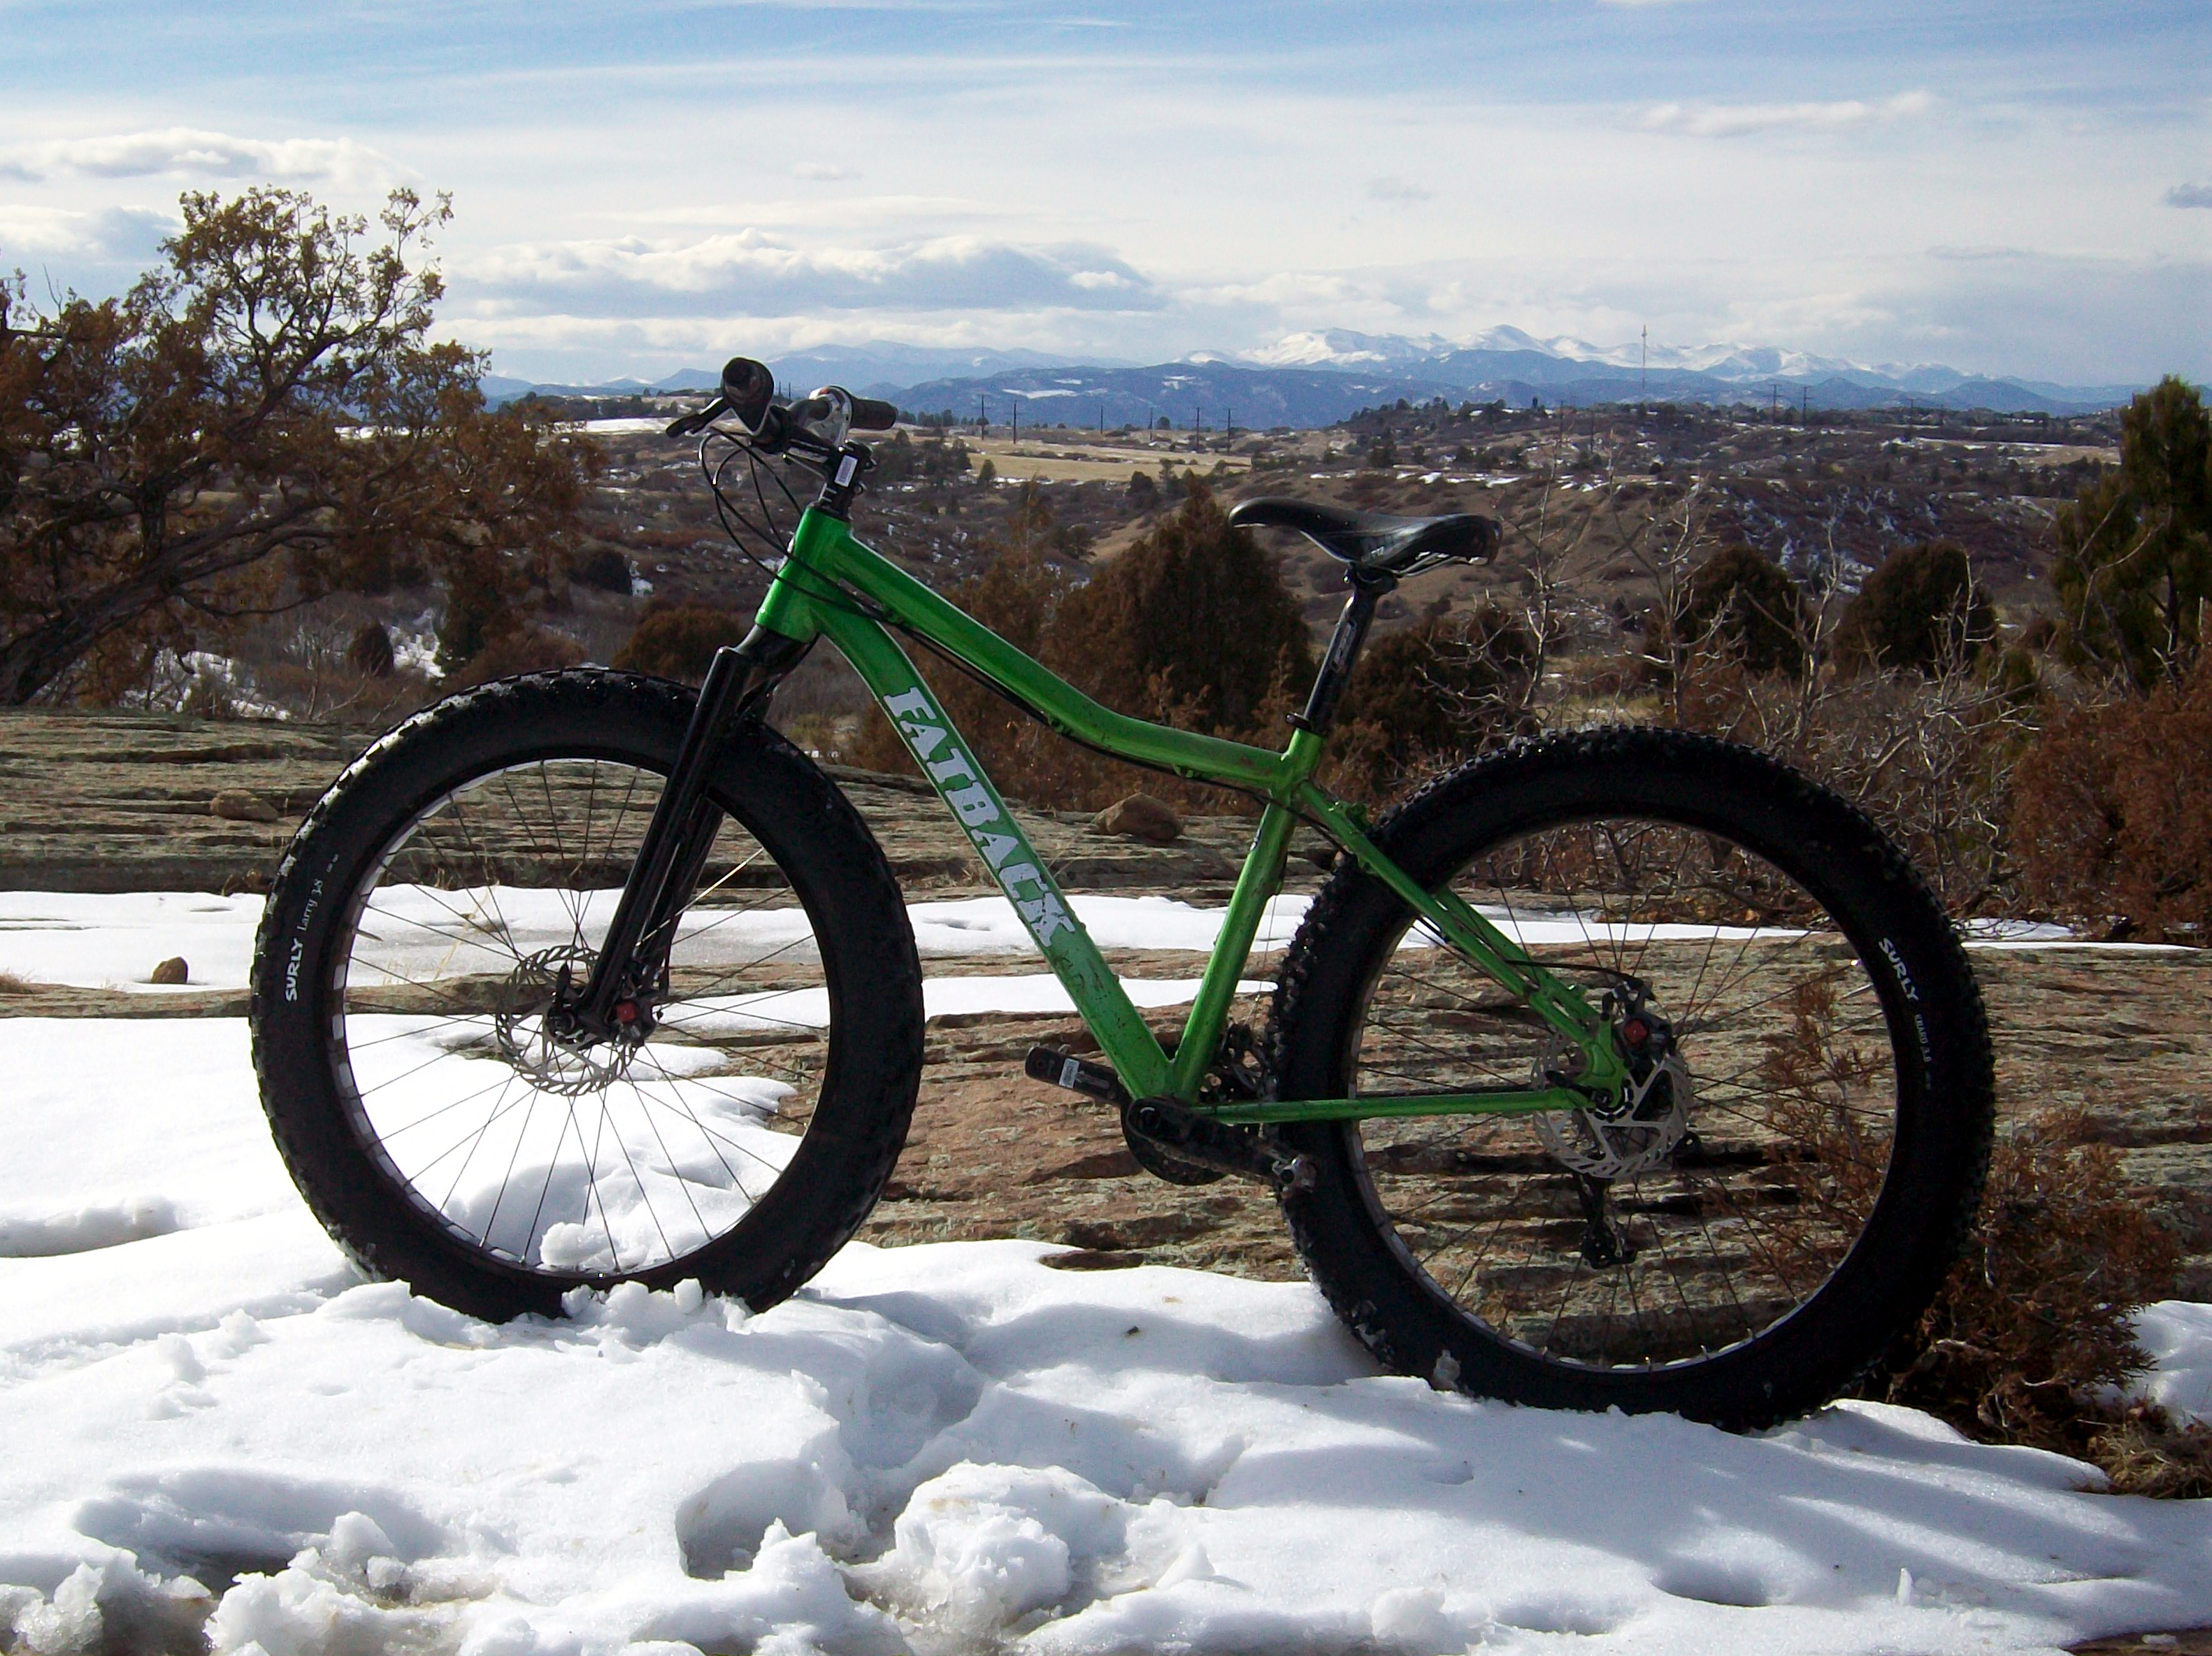 the deluxe build tips the scales right at 30 pounds with pedals while the sl weighs in a couple pounds lighter thats right an alloy fat bike with 4in